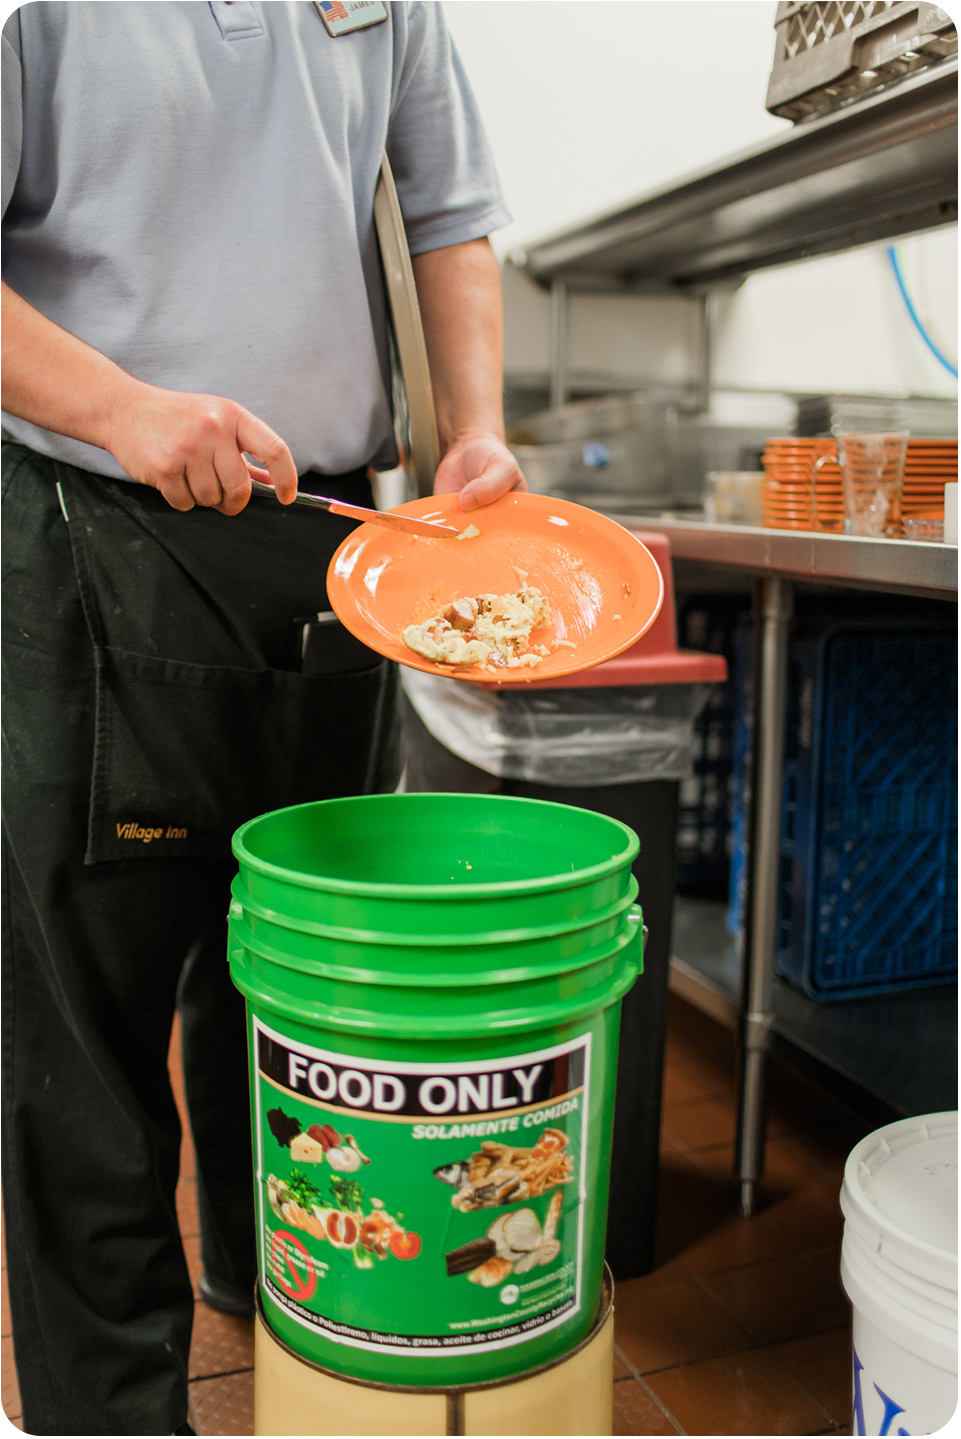 Village Inn food scraps collection